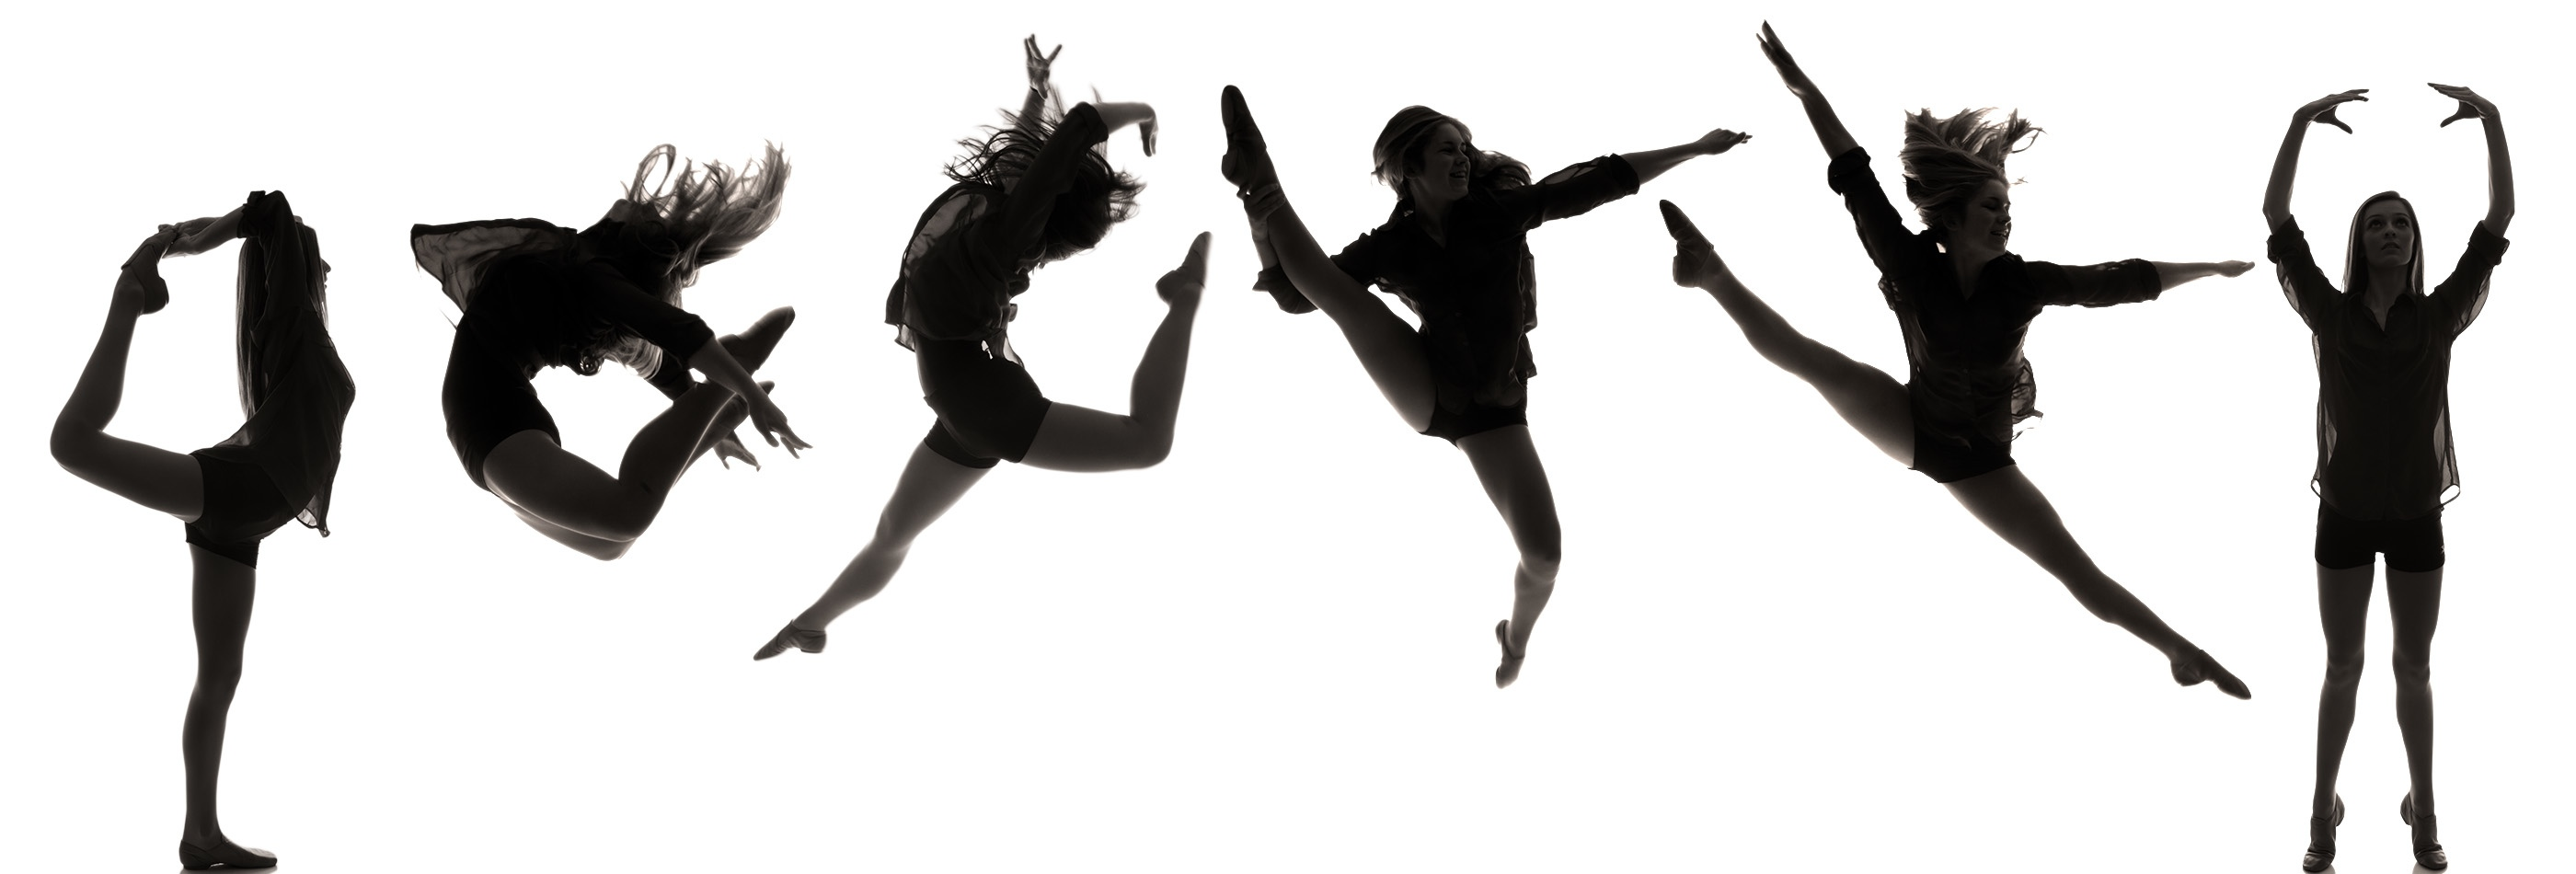 2800x950 Dance Team Silhouette Clipart